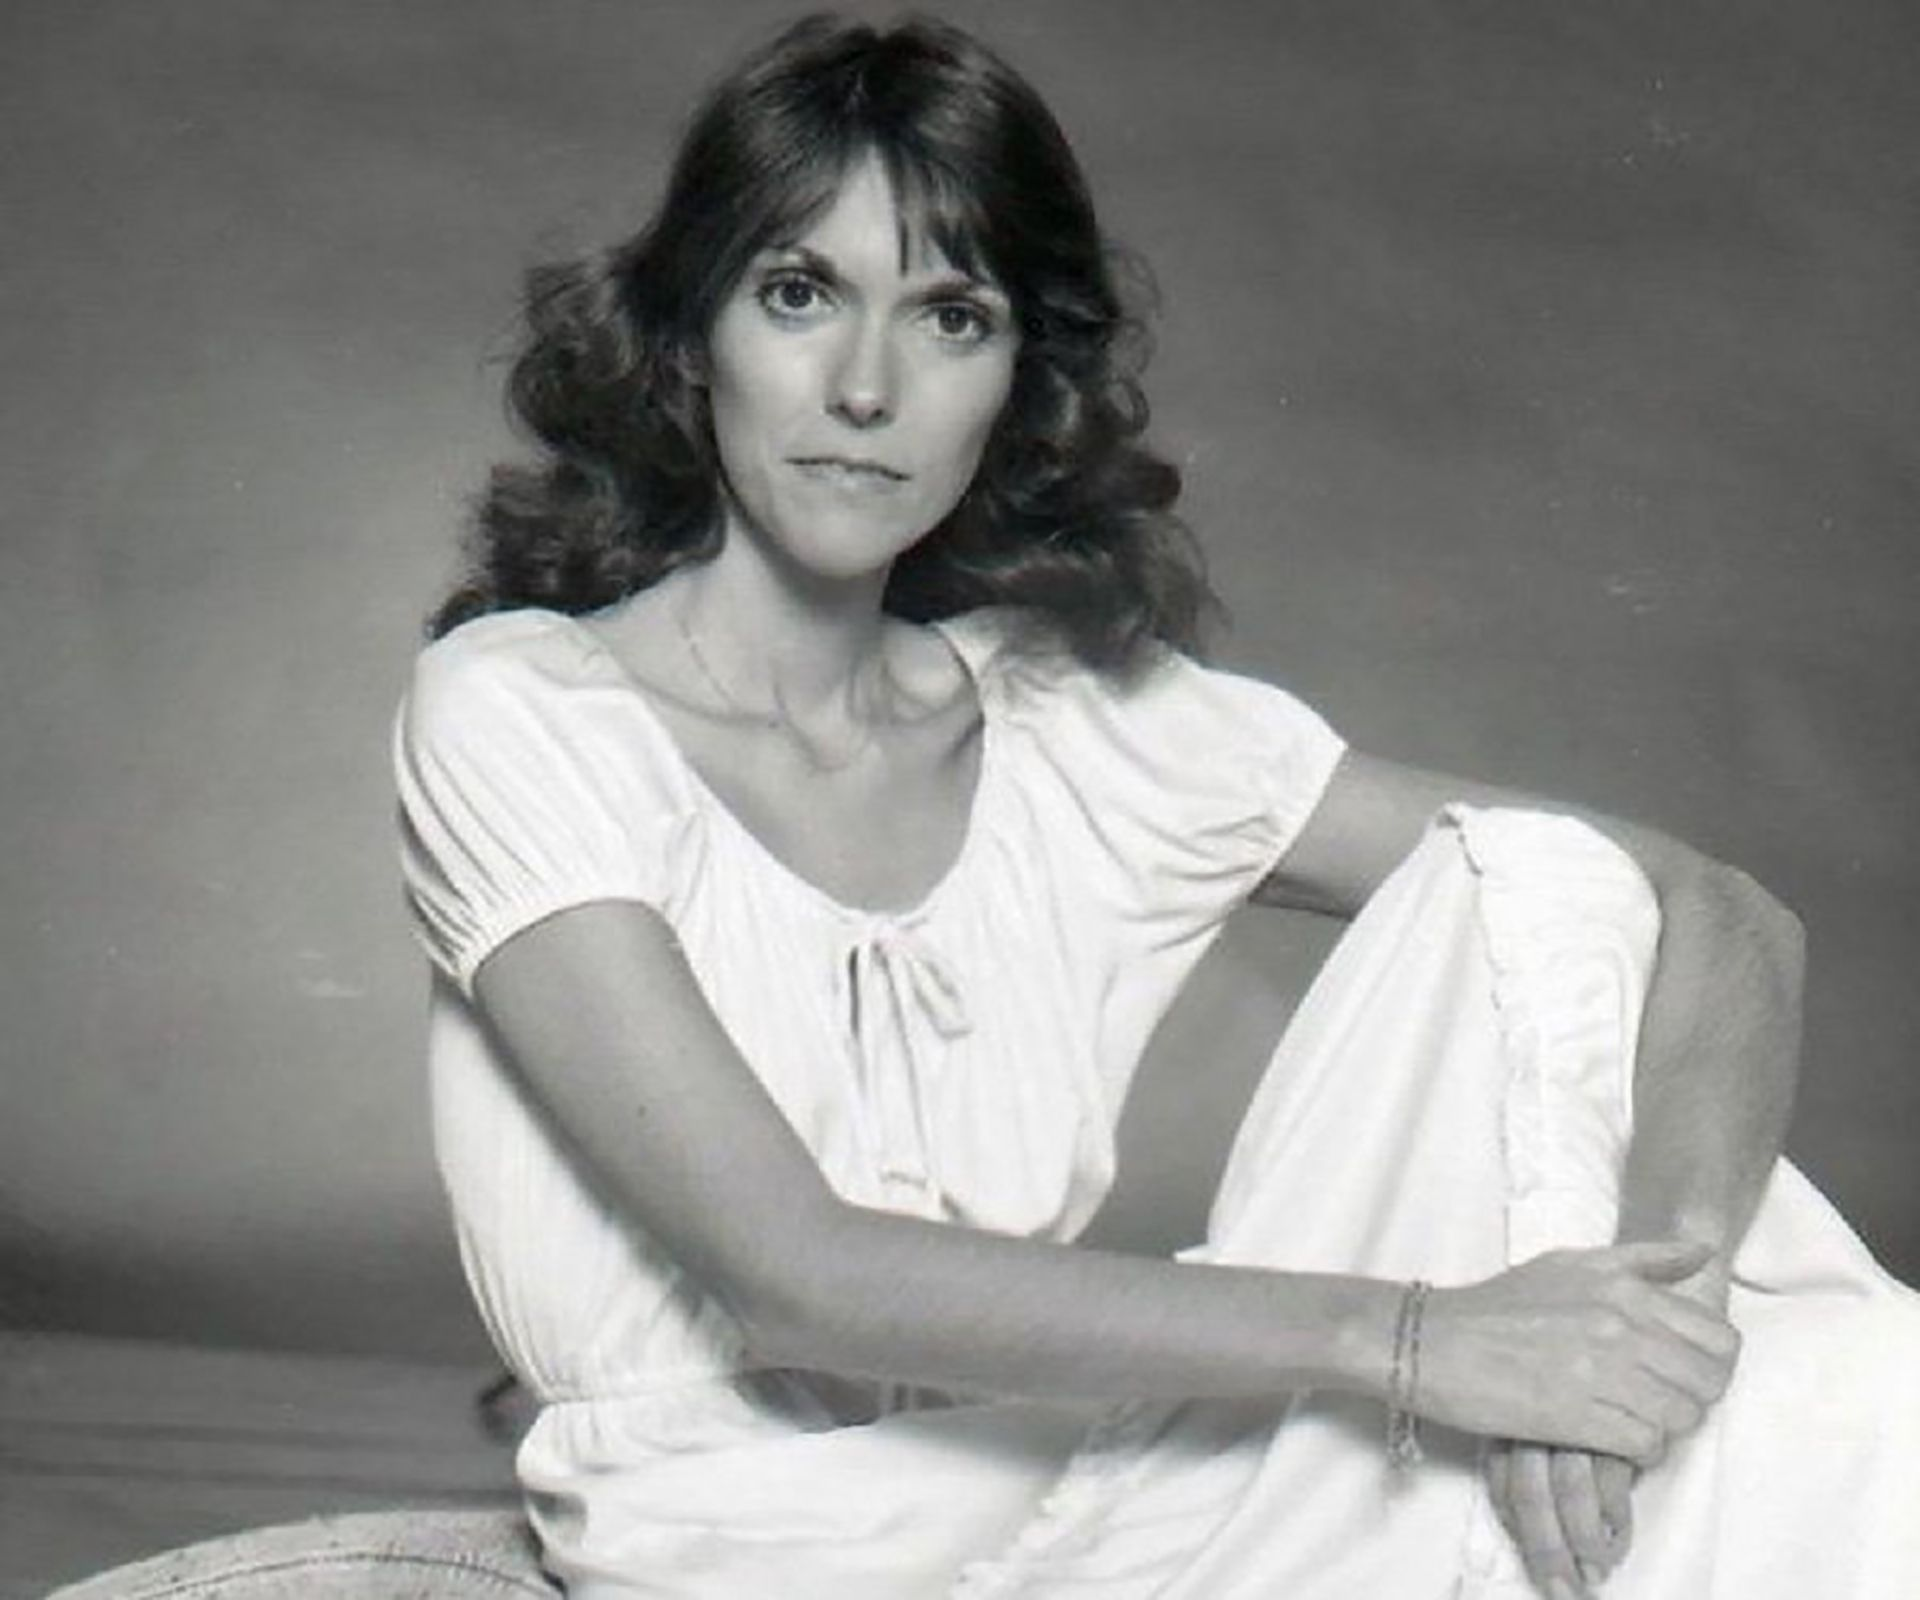 Karen Carpenter   Karen Carpenter   Pinterest   Karen carpenter     Karen Carpenter